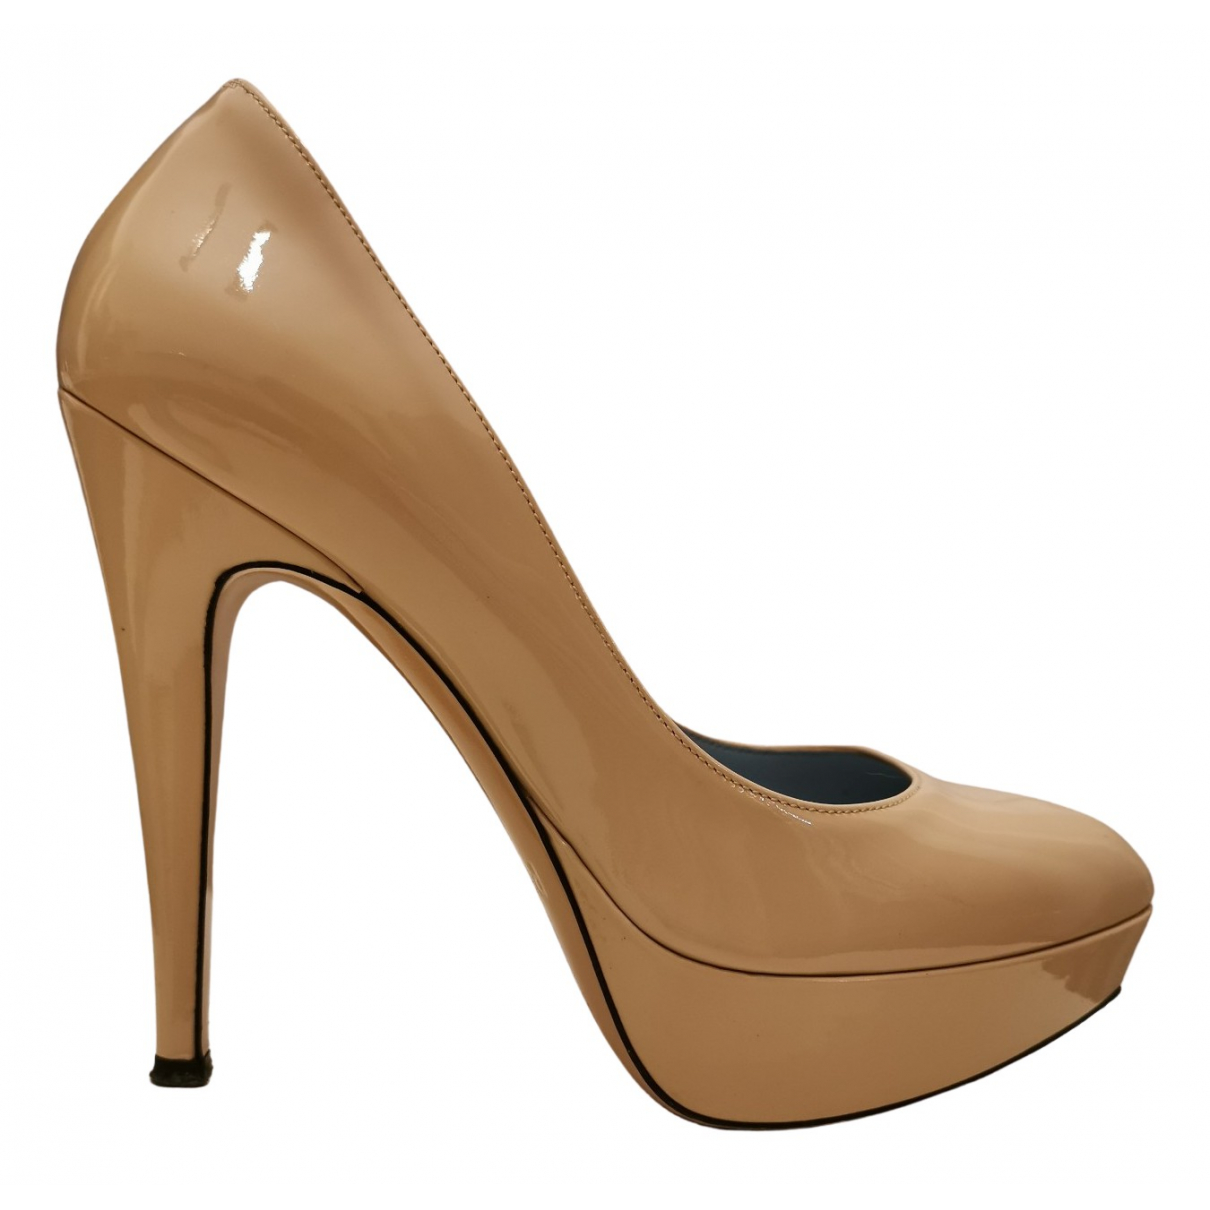 Pollini N Pink Patent leather Heels for Women 37 EU